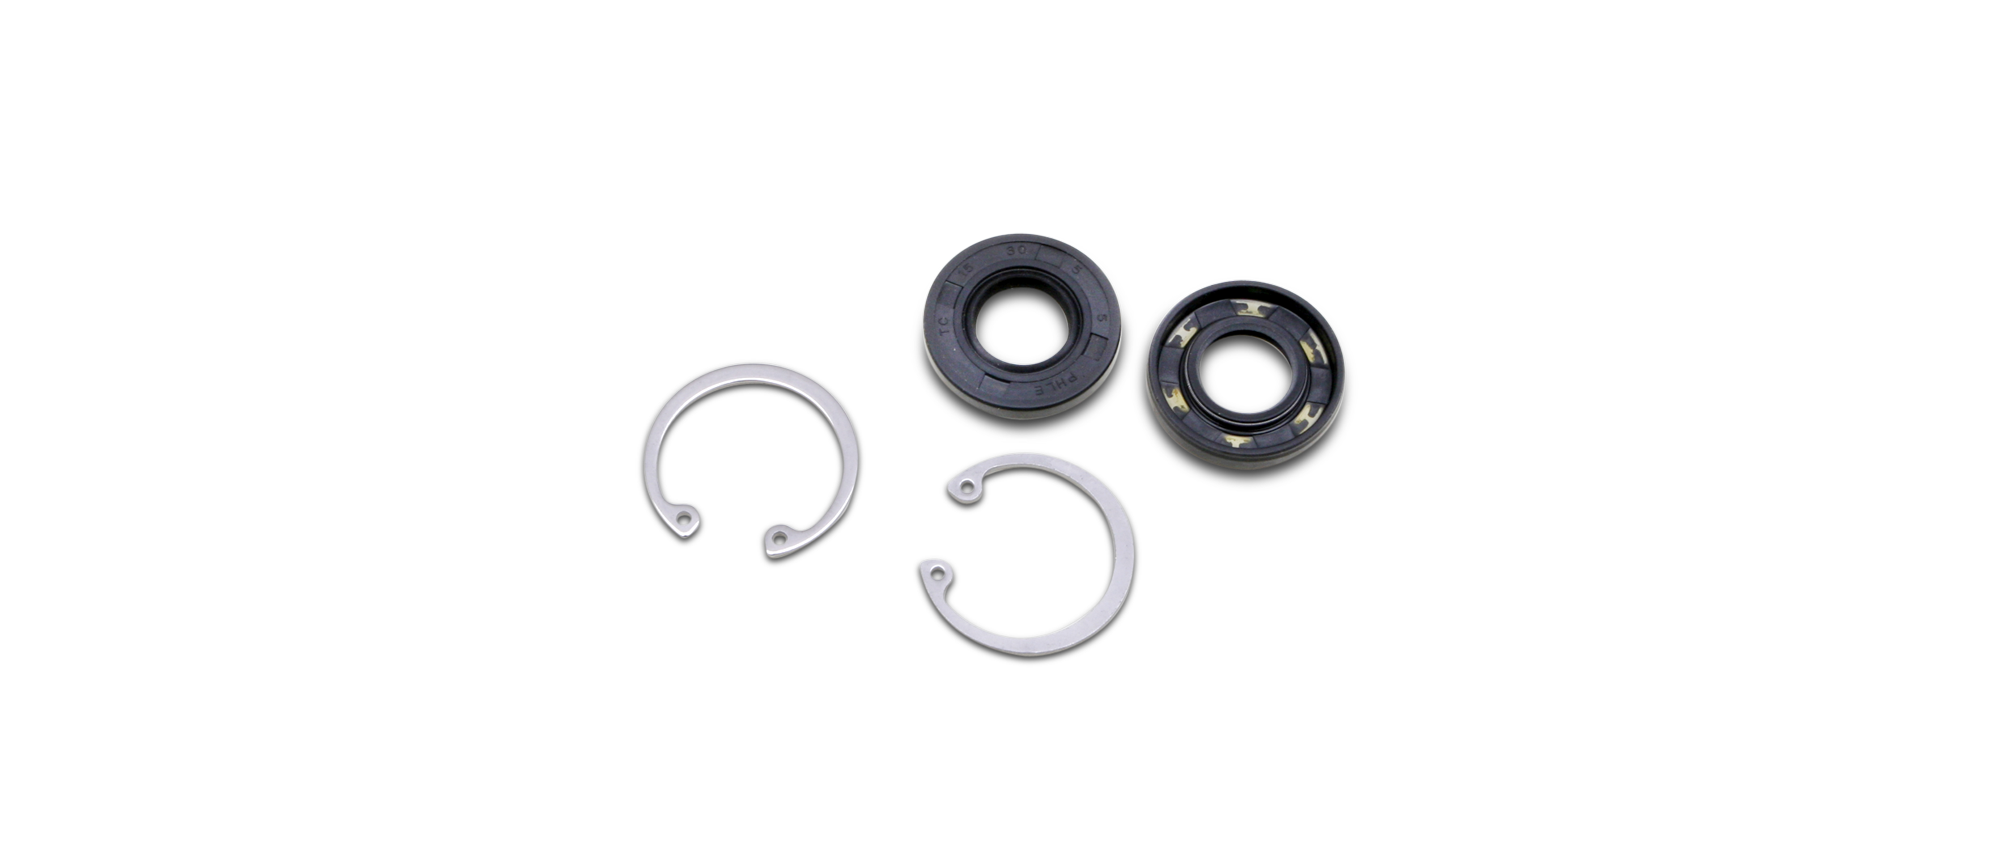 Crank Seal Replacement Kit